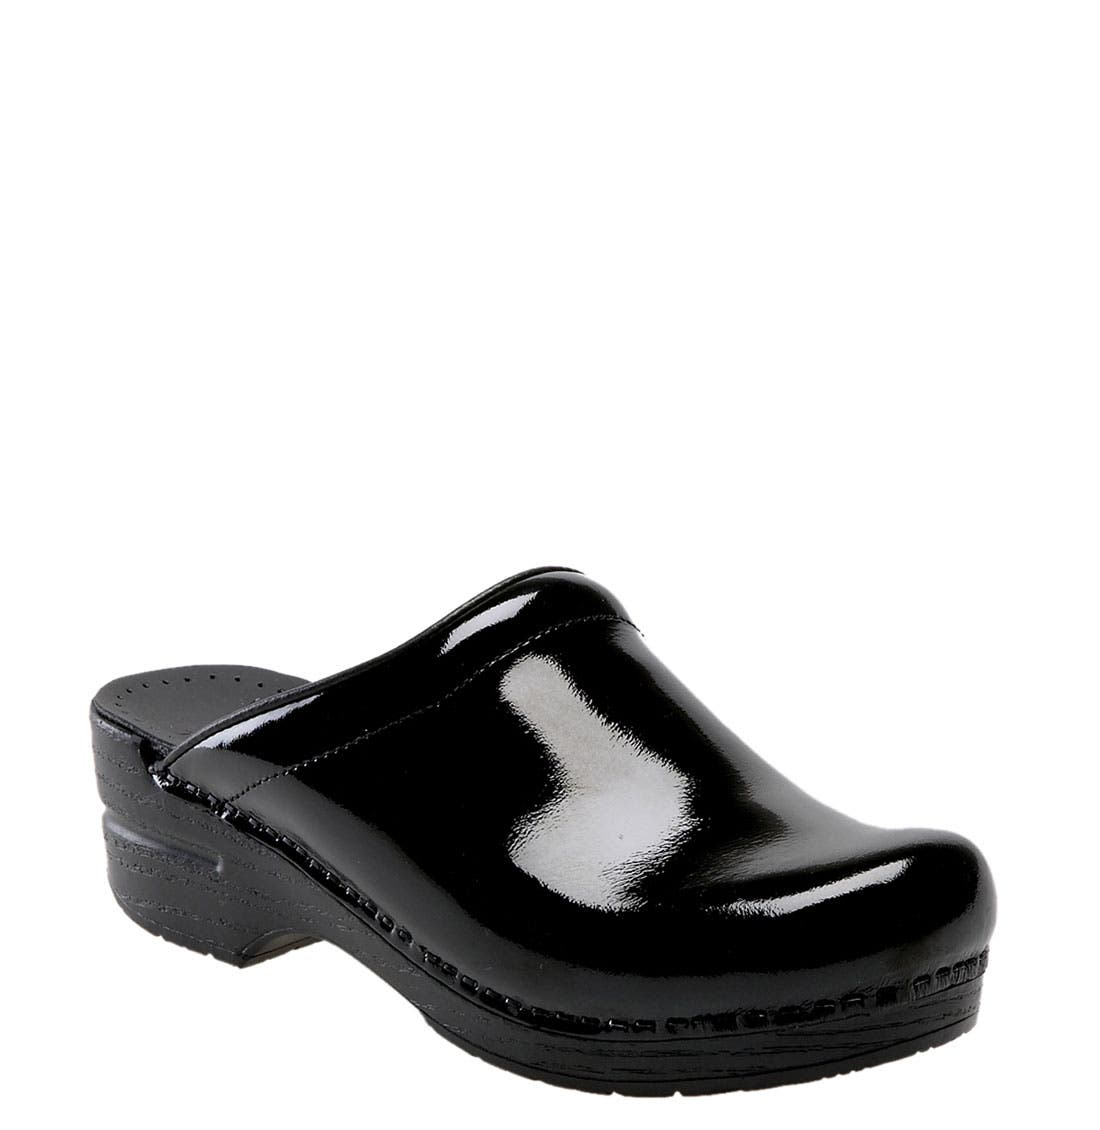 Alternate Image 1 Selected - Dansko 'Sonja' Patent Leather Clog